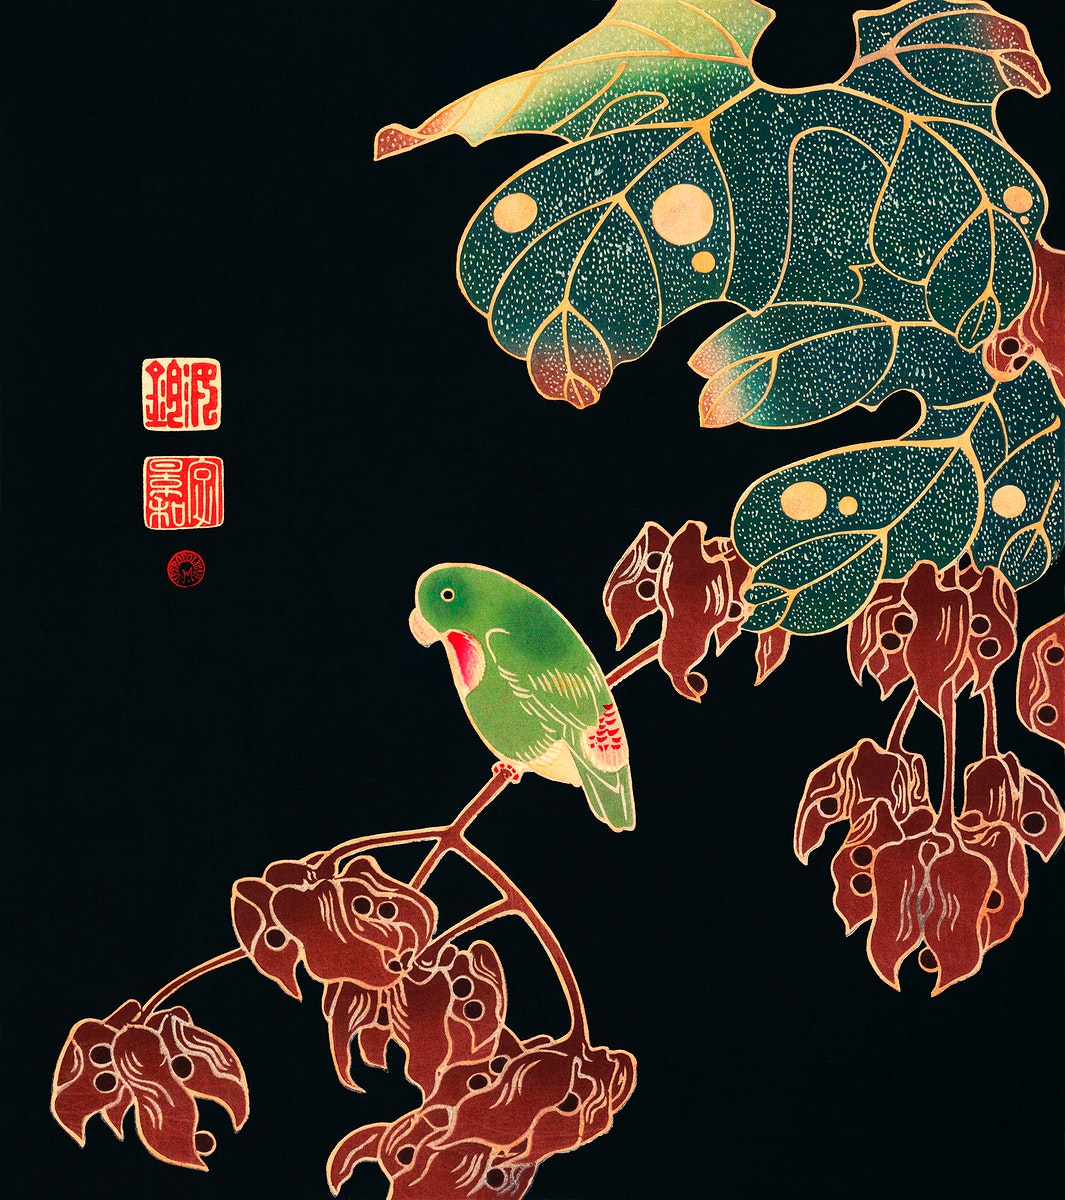 The Paroquet (ca. 1900) illustration by Ito Jakuchu. Original from The MET Museum. Digitally enhanced by rawpixel.